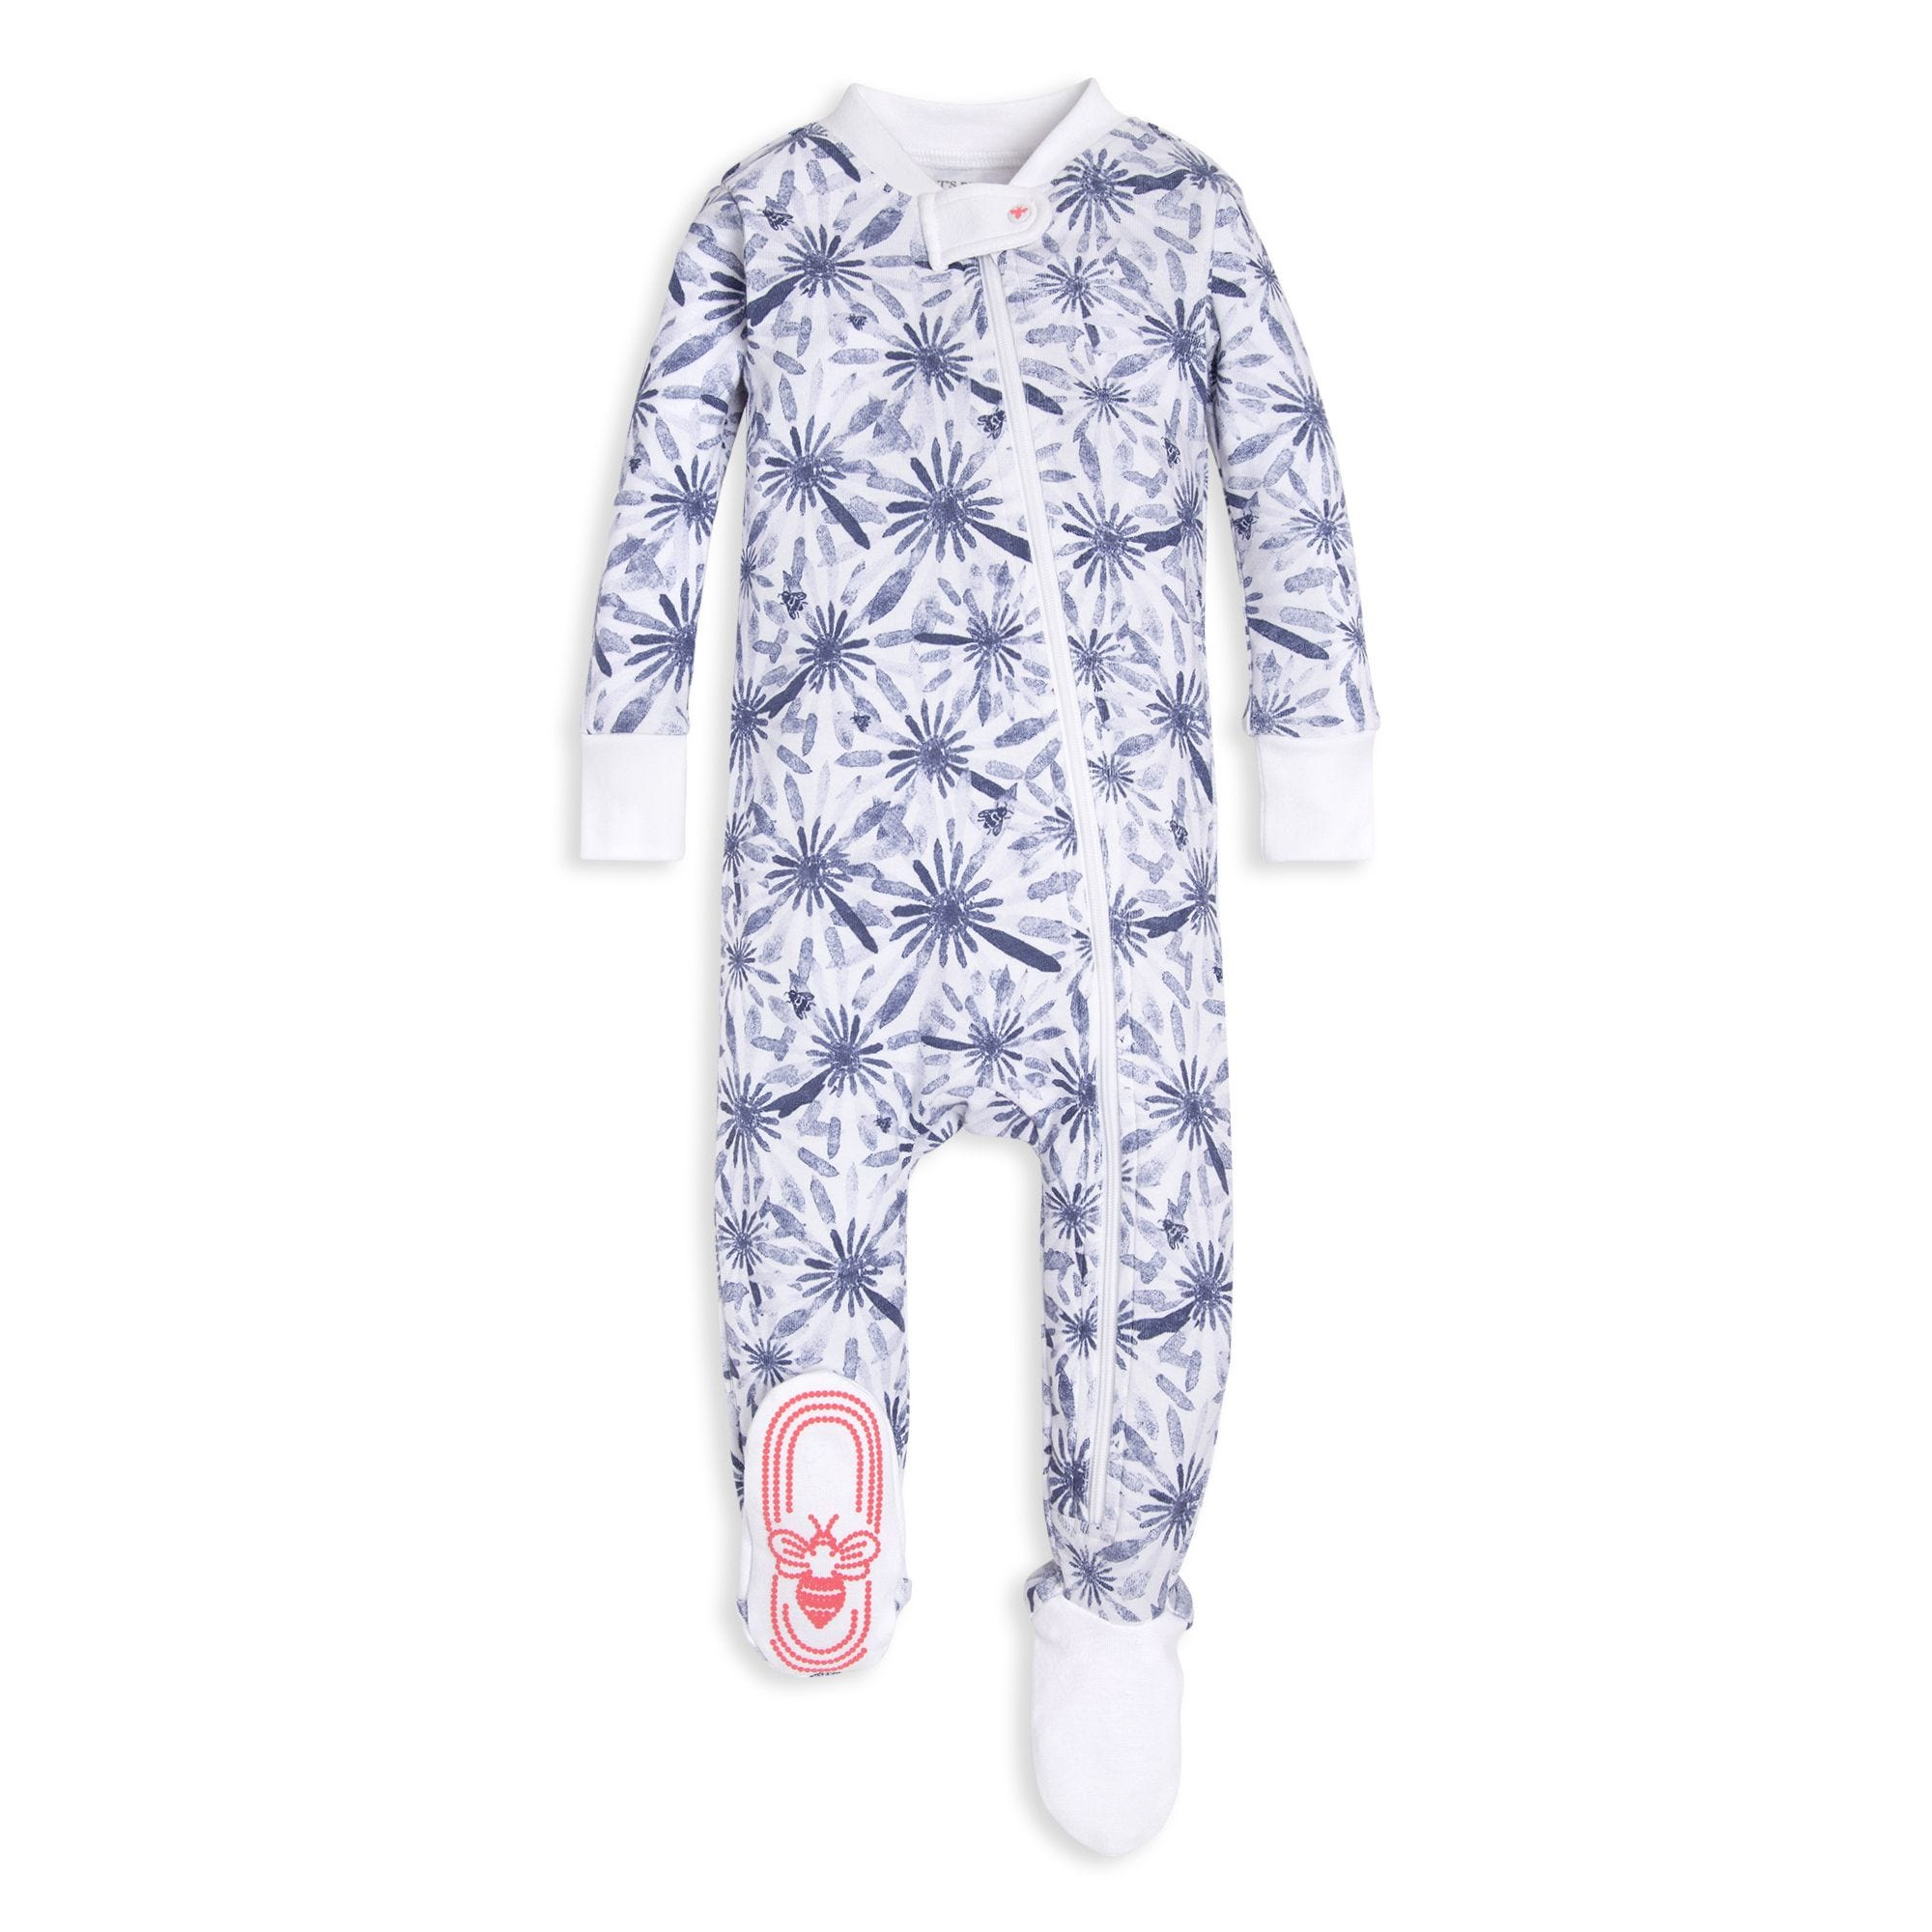 737d9510dadd Daisy Floral Print Organic Baby Zip Up Footed Pajamas